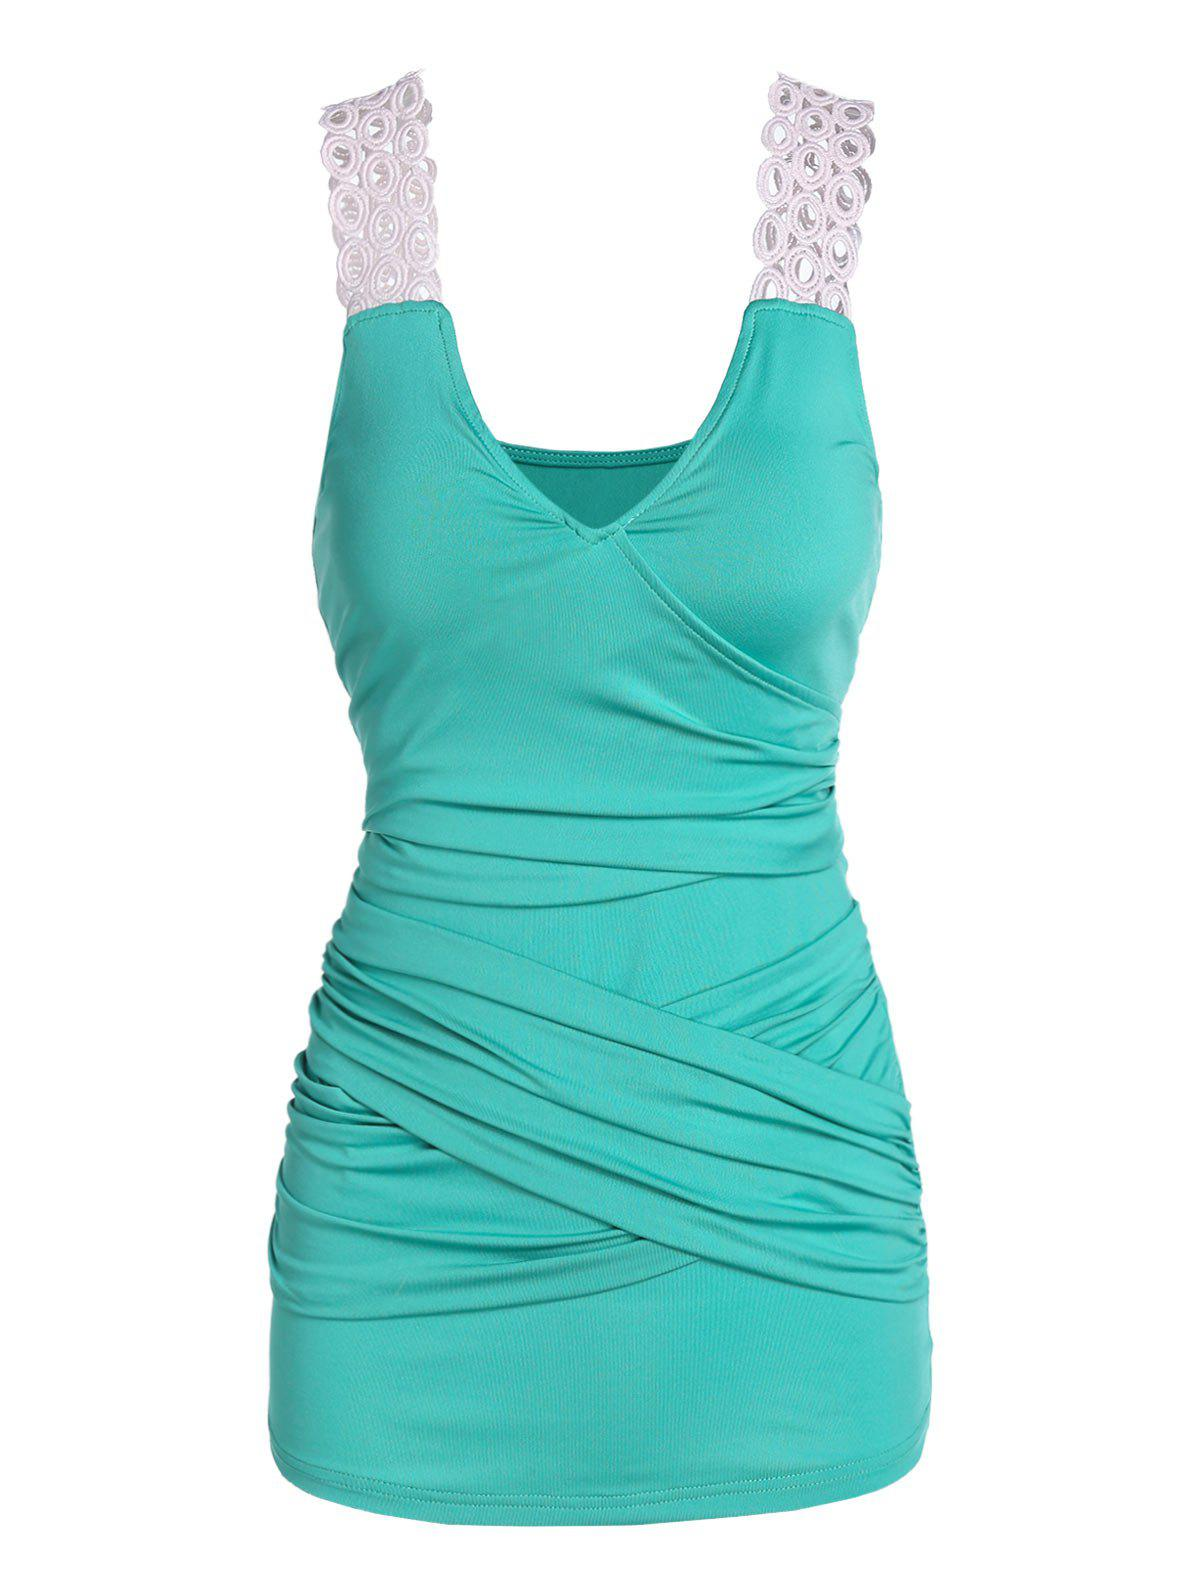 Crossover Ruched Tank Top - LIGHT SEA GREEN 3XL